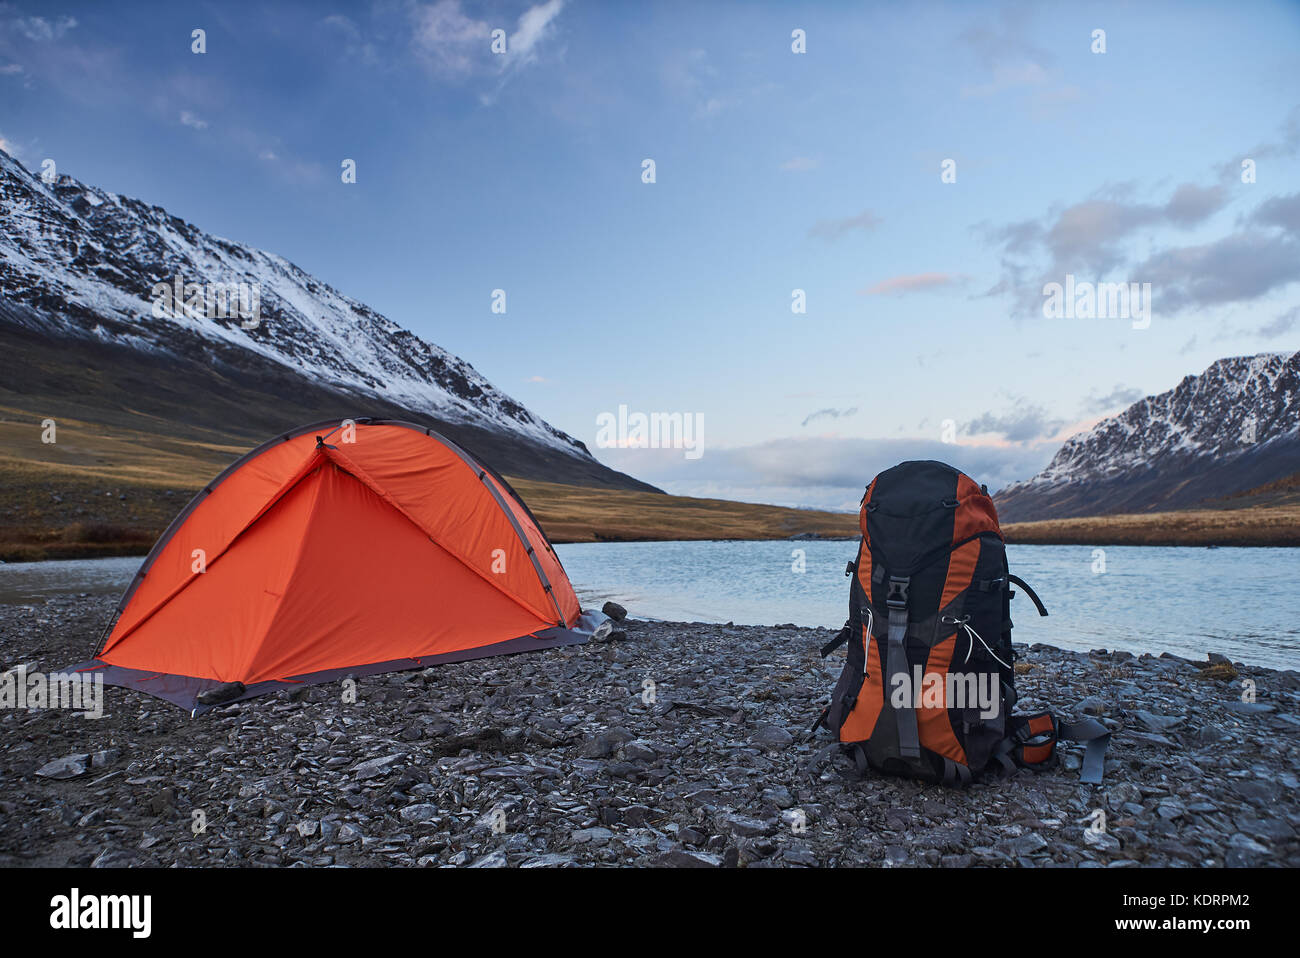 Tent with backpack in the Mountains - Stock Image